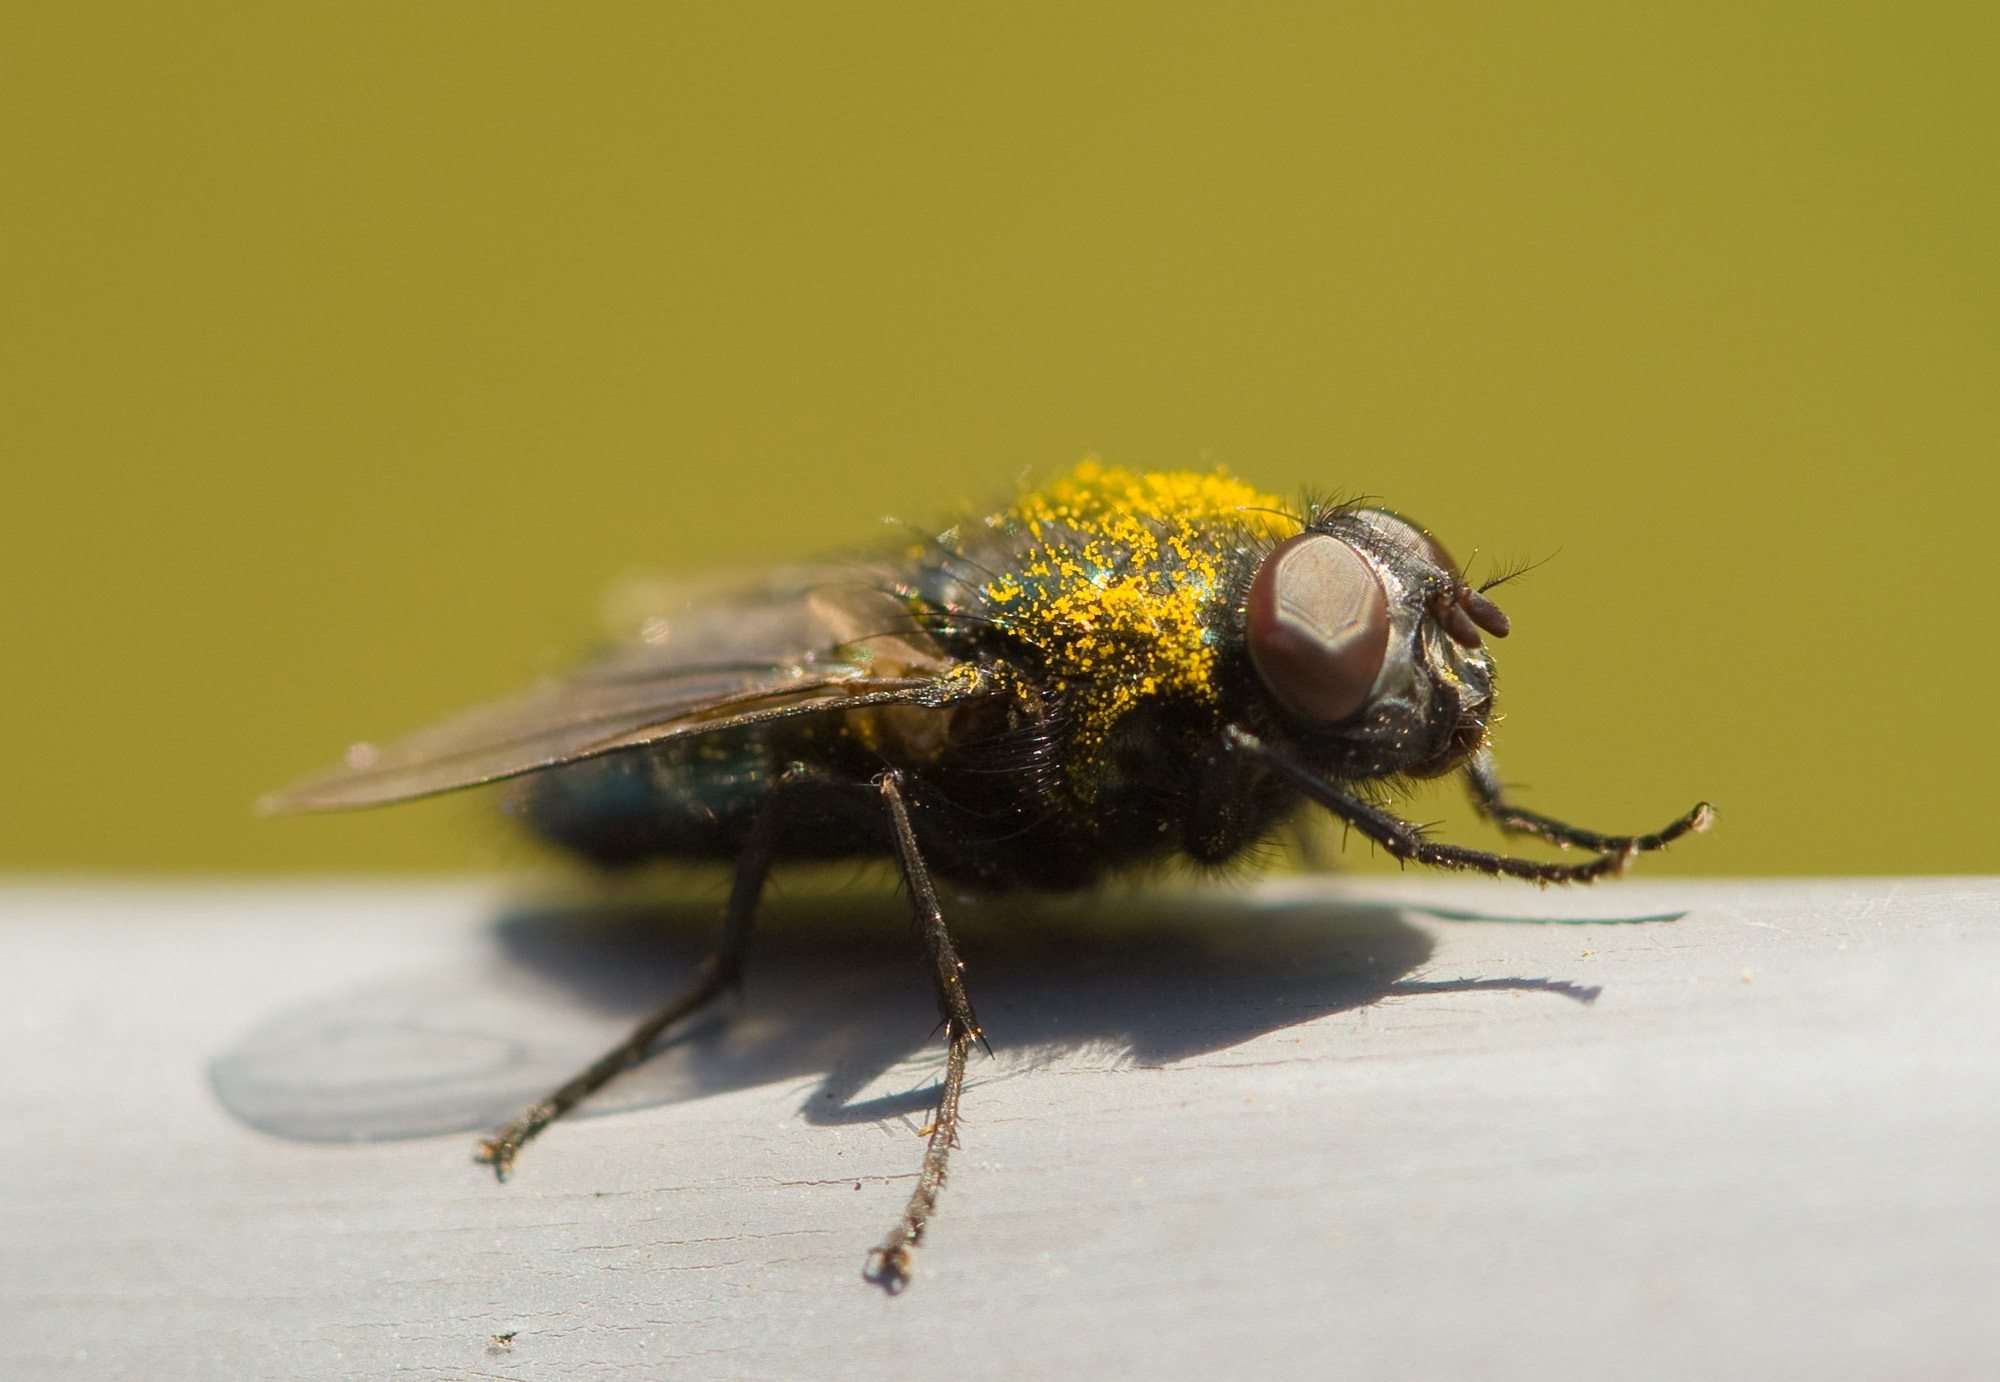 Fly macro, Legs, Macro, Nature, Yellow, HQ Photo